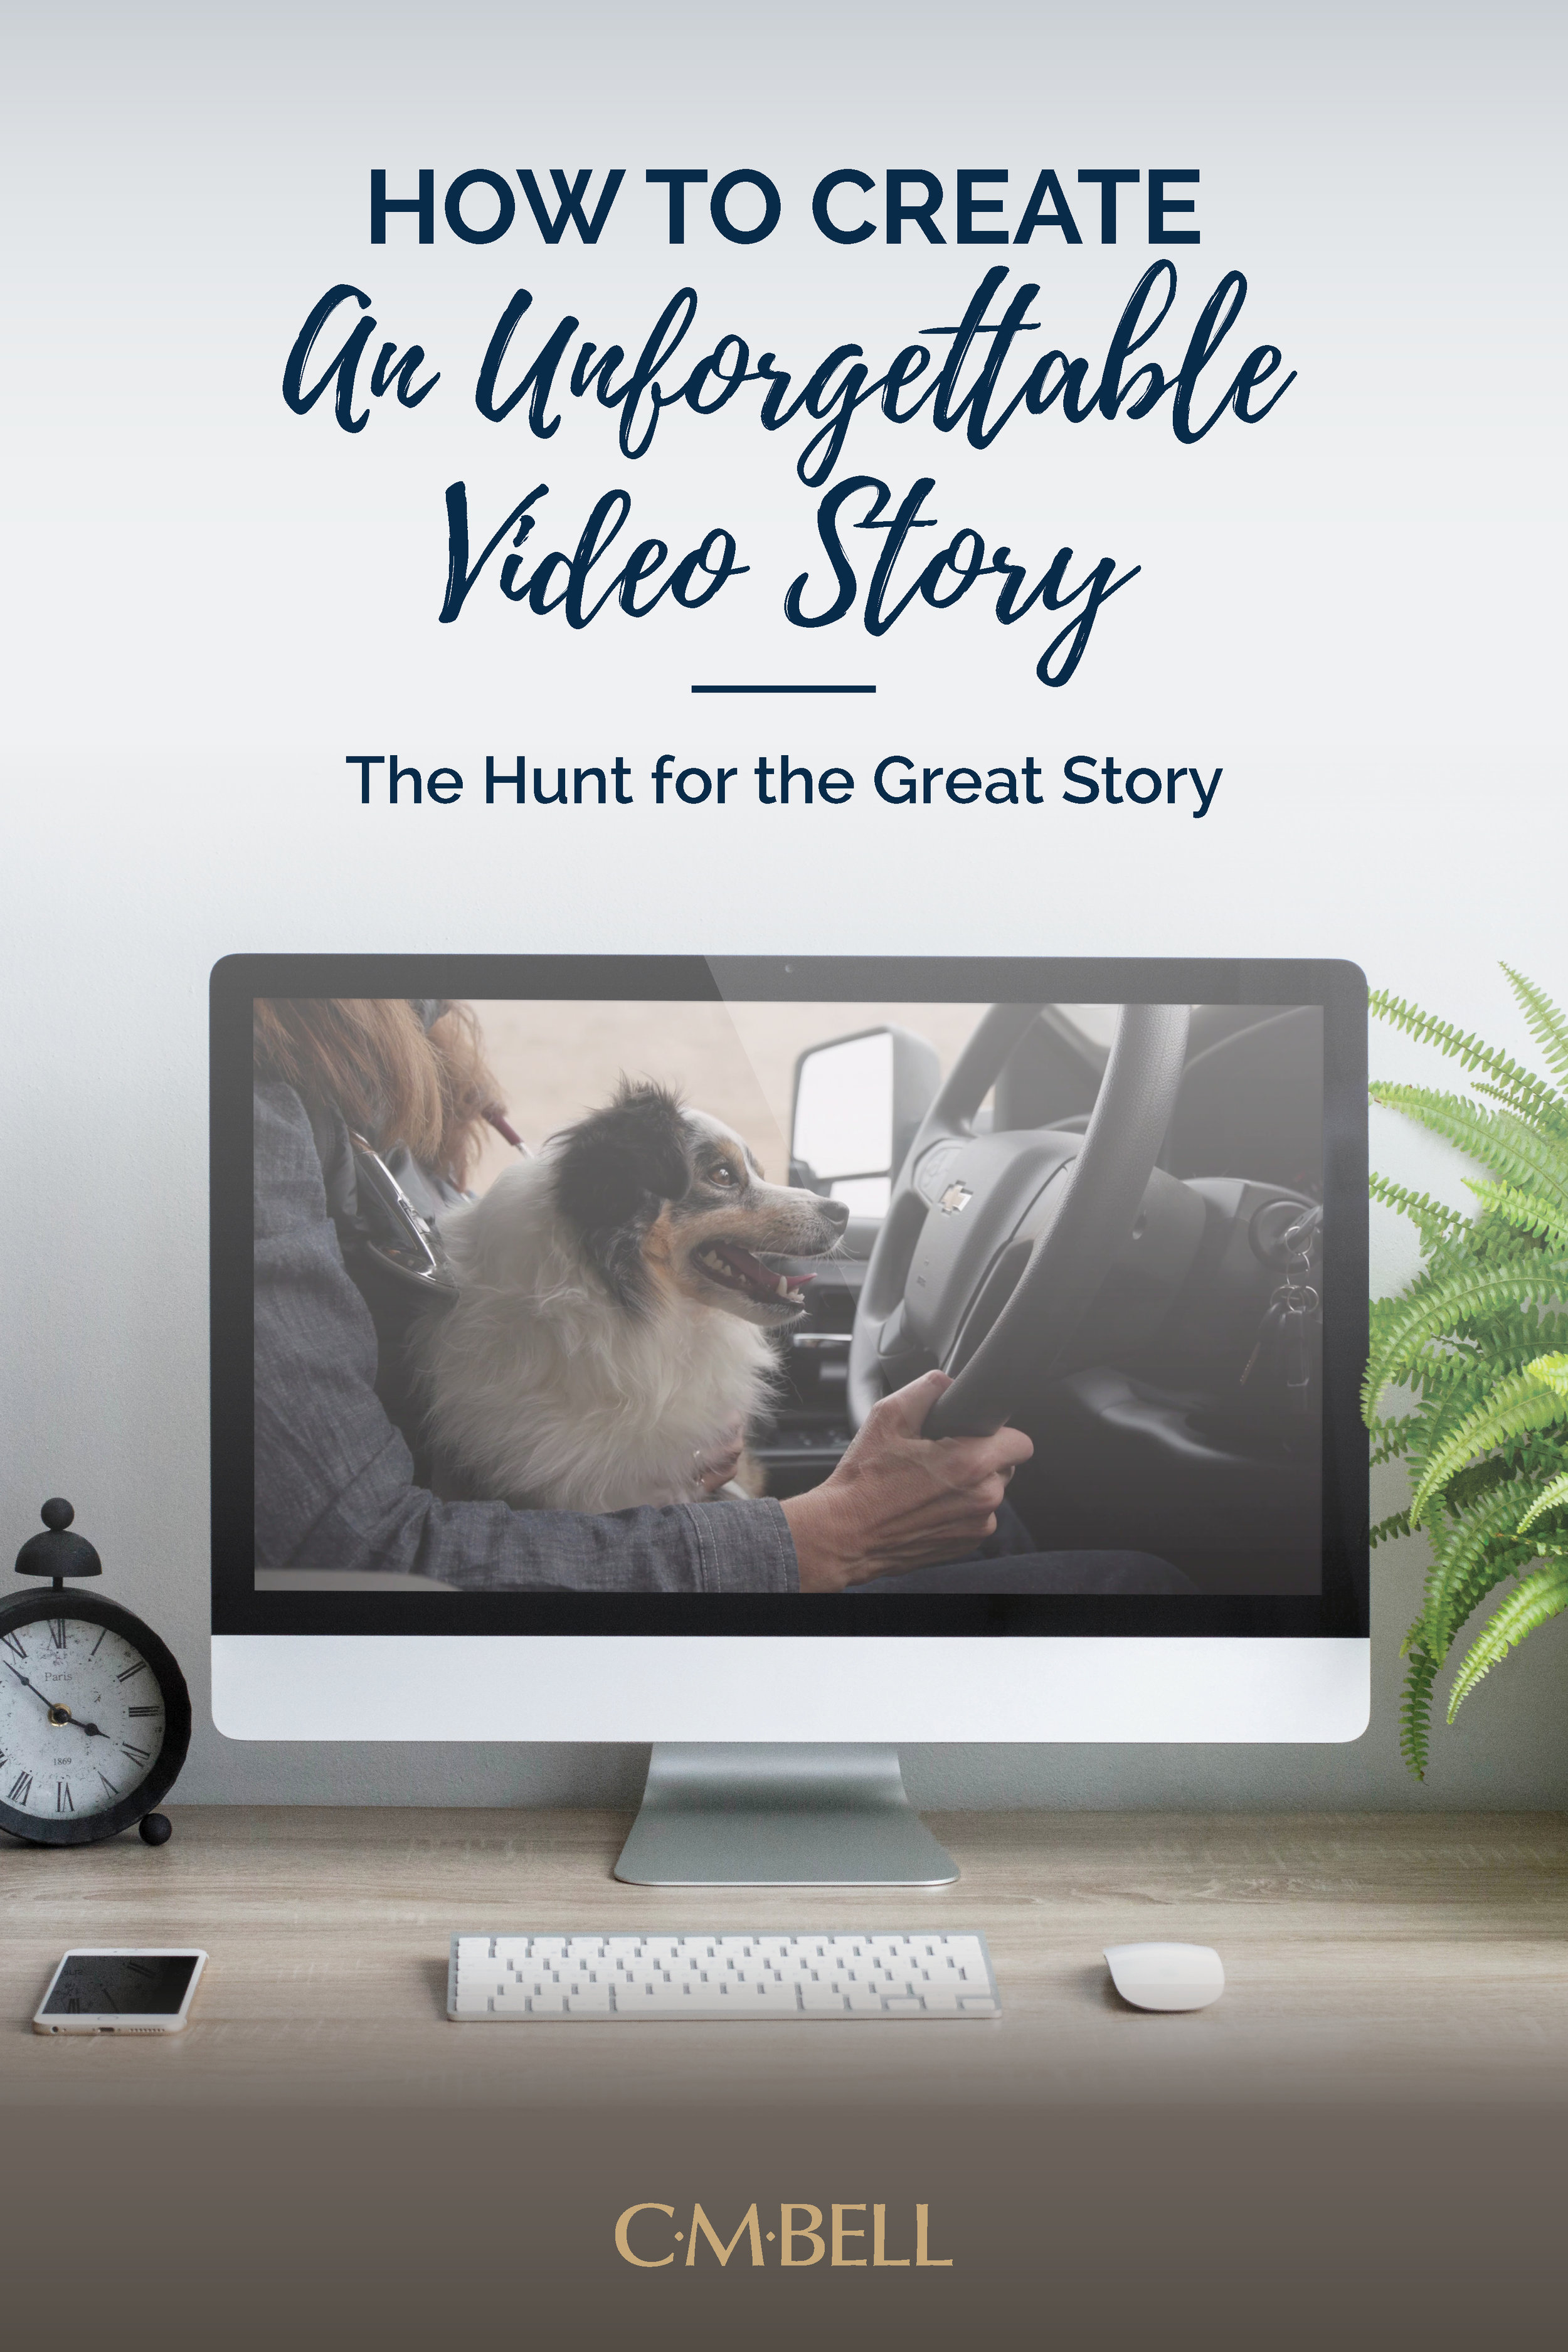 how-to-create-an-unforgettable-video-story.jpg